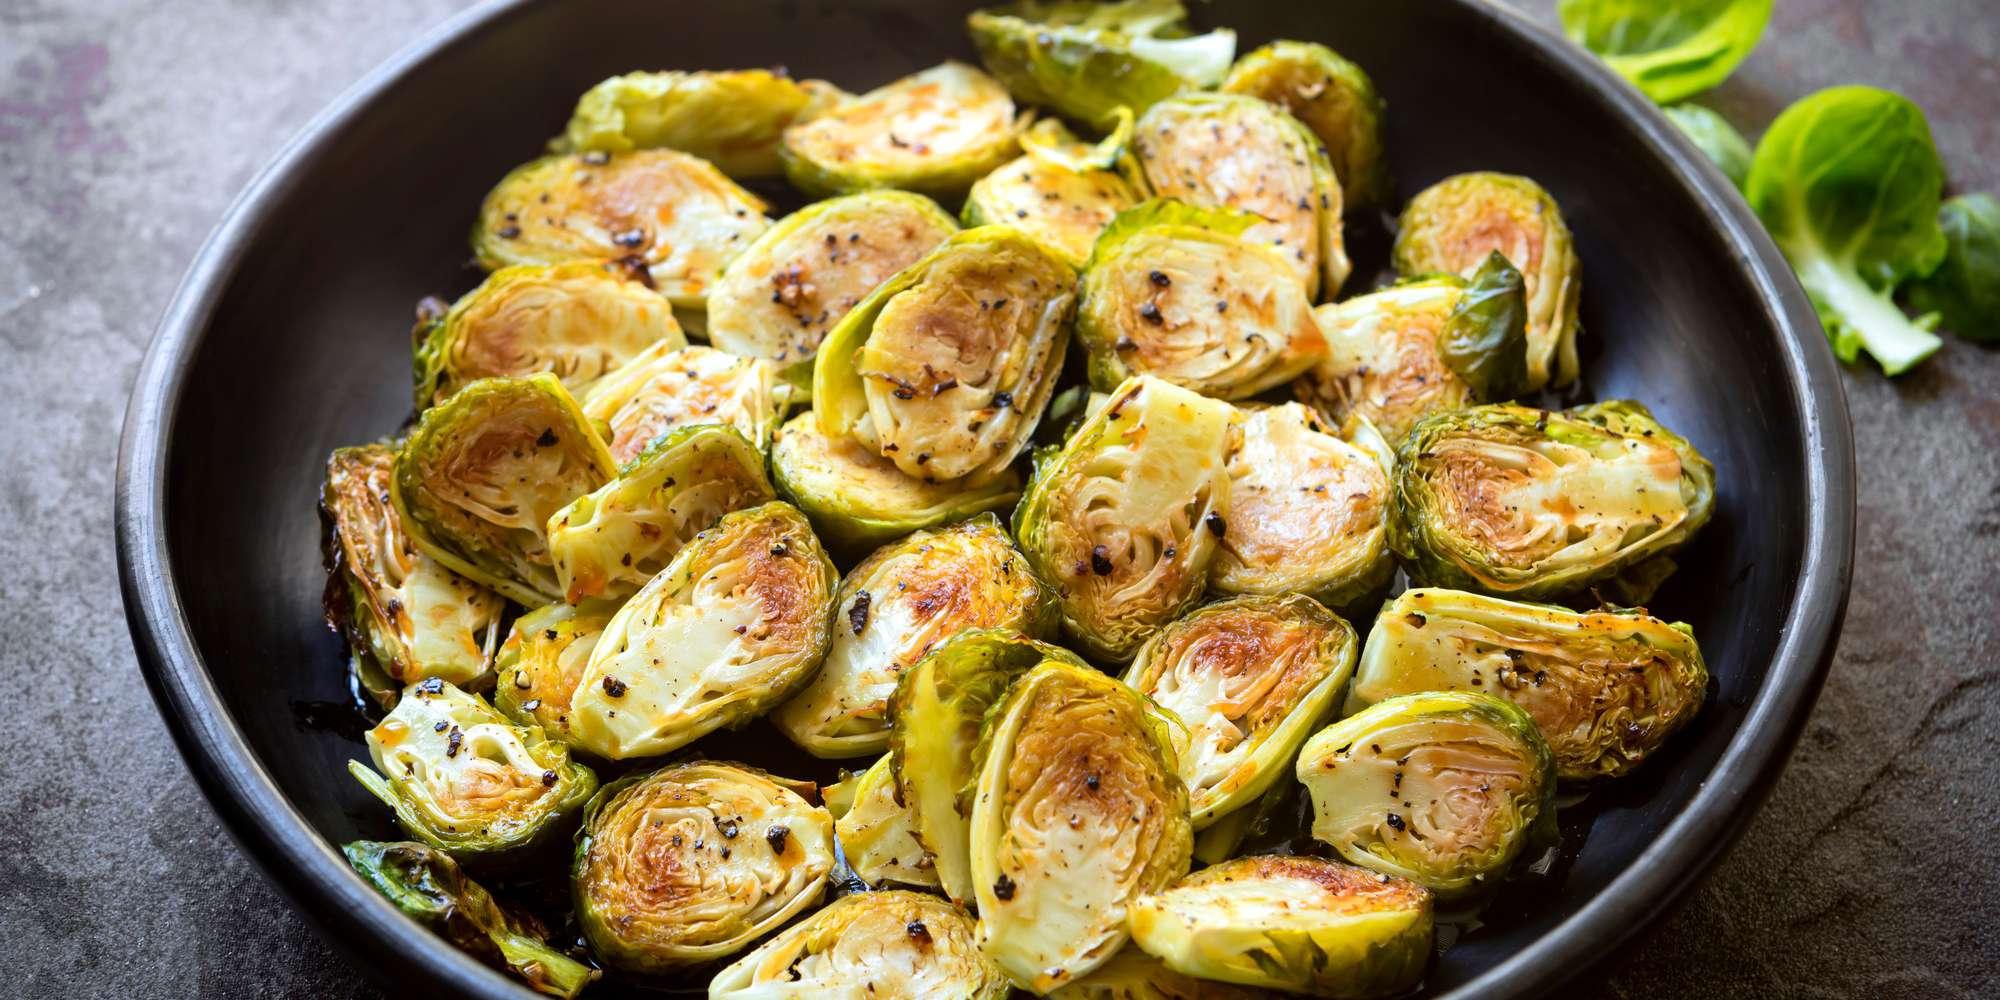 Asian Inspired Roasted Brussels Sprouts